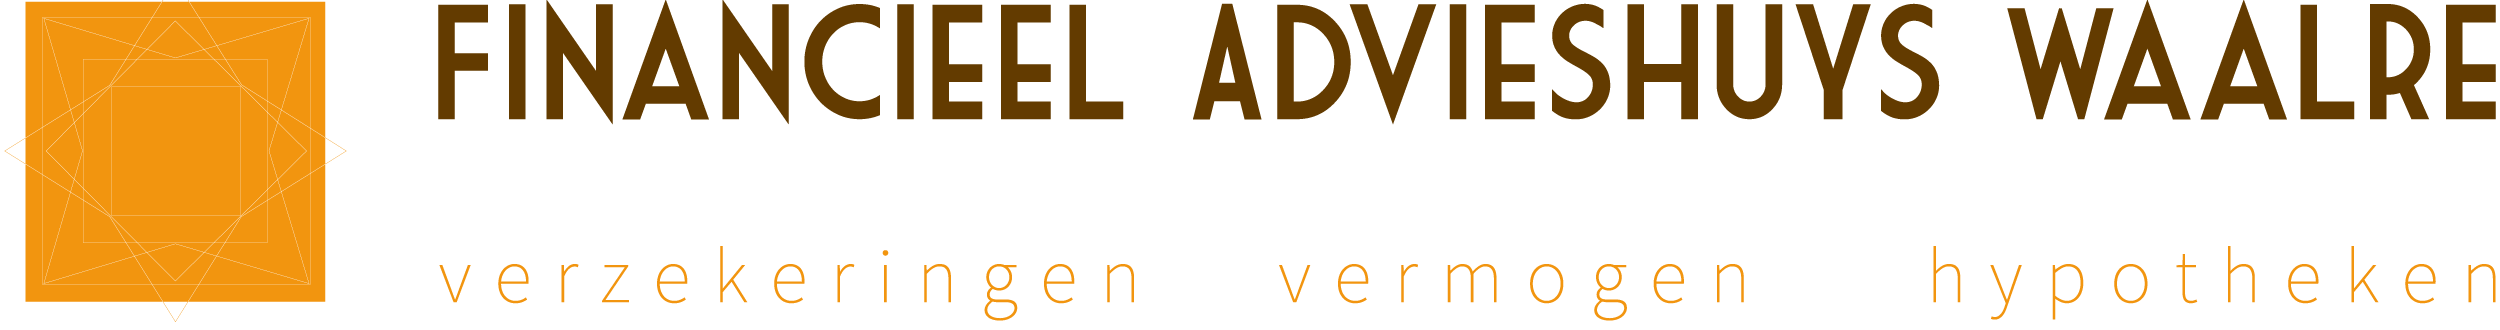 Financieel Advieshuys Waalre logo